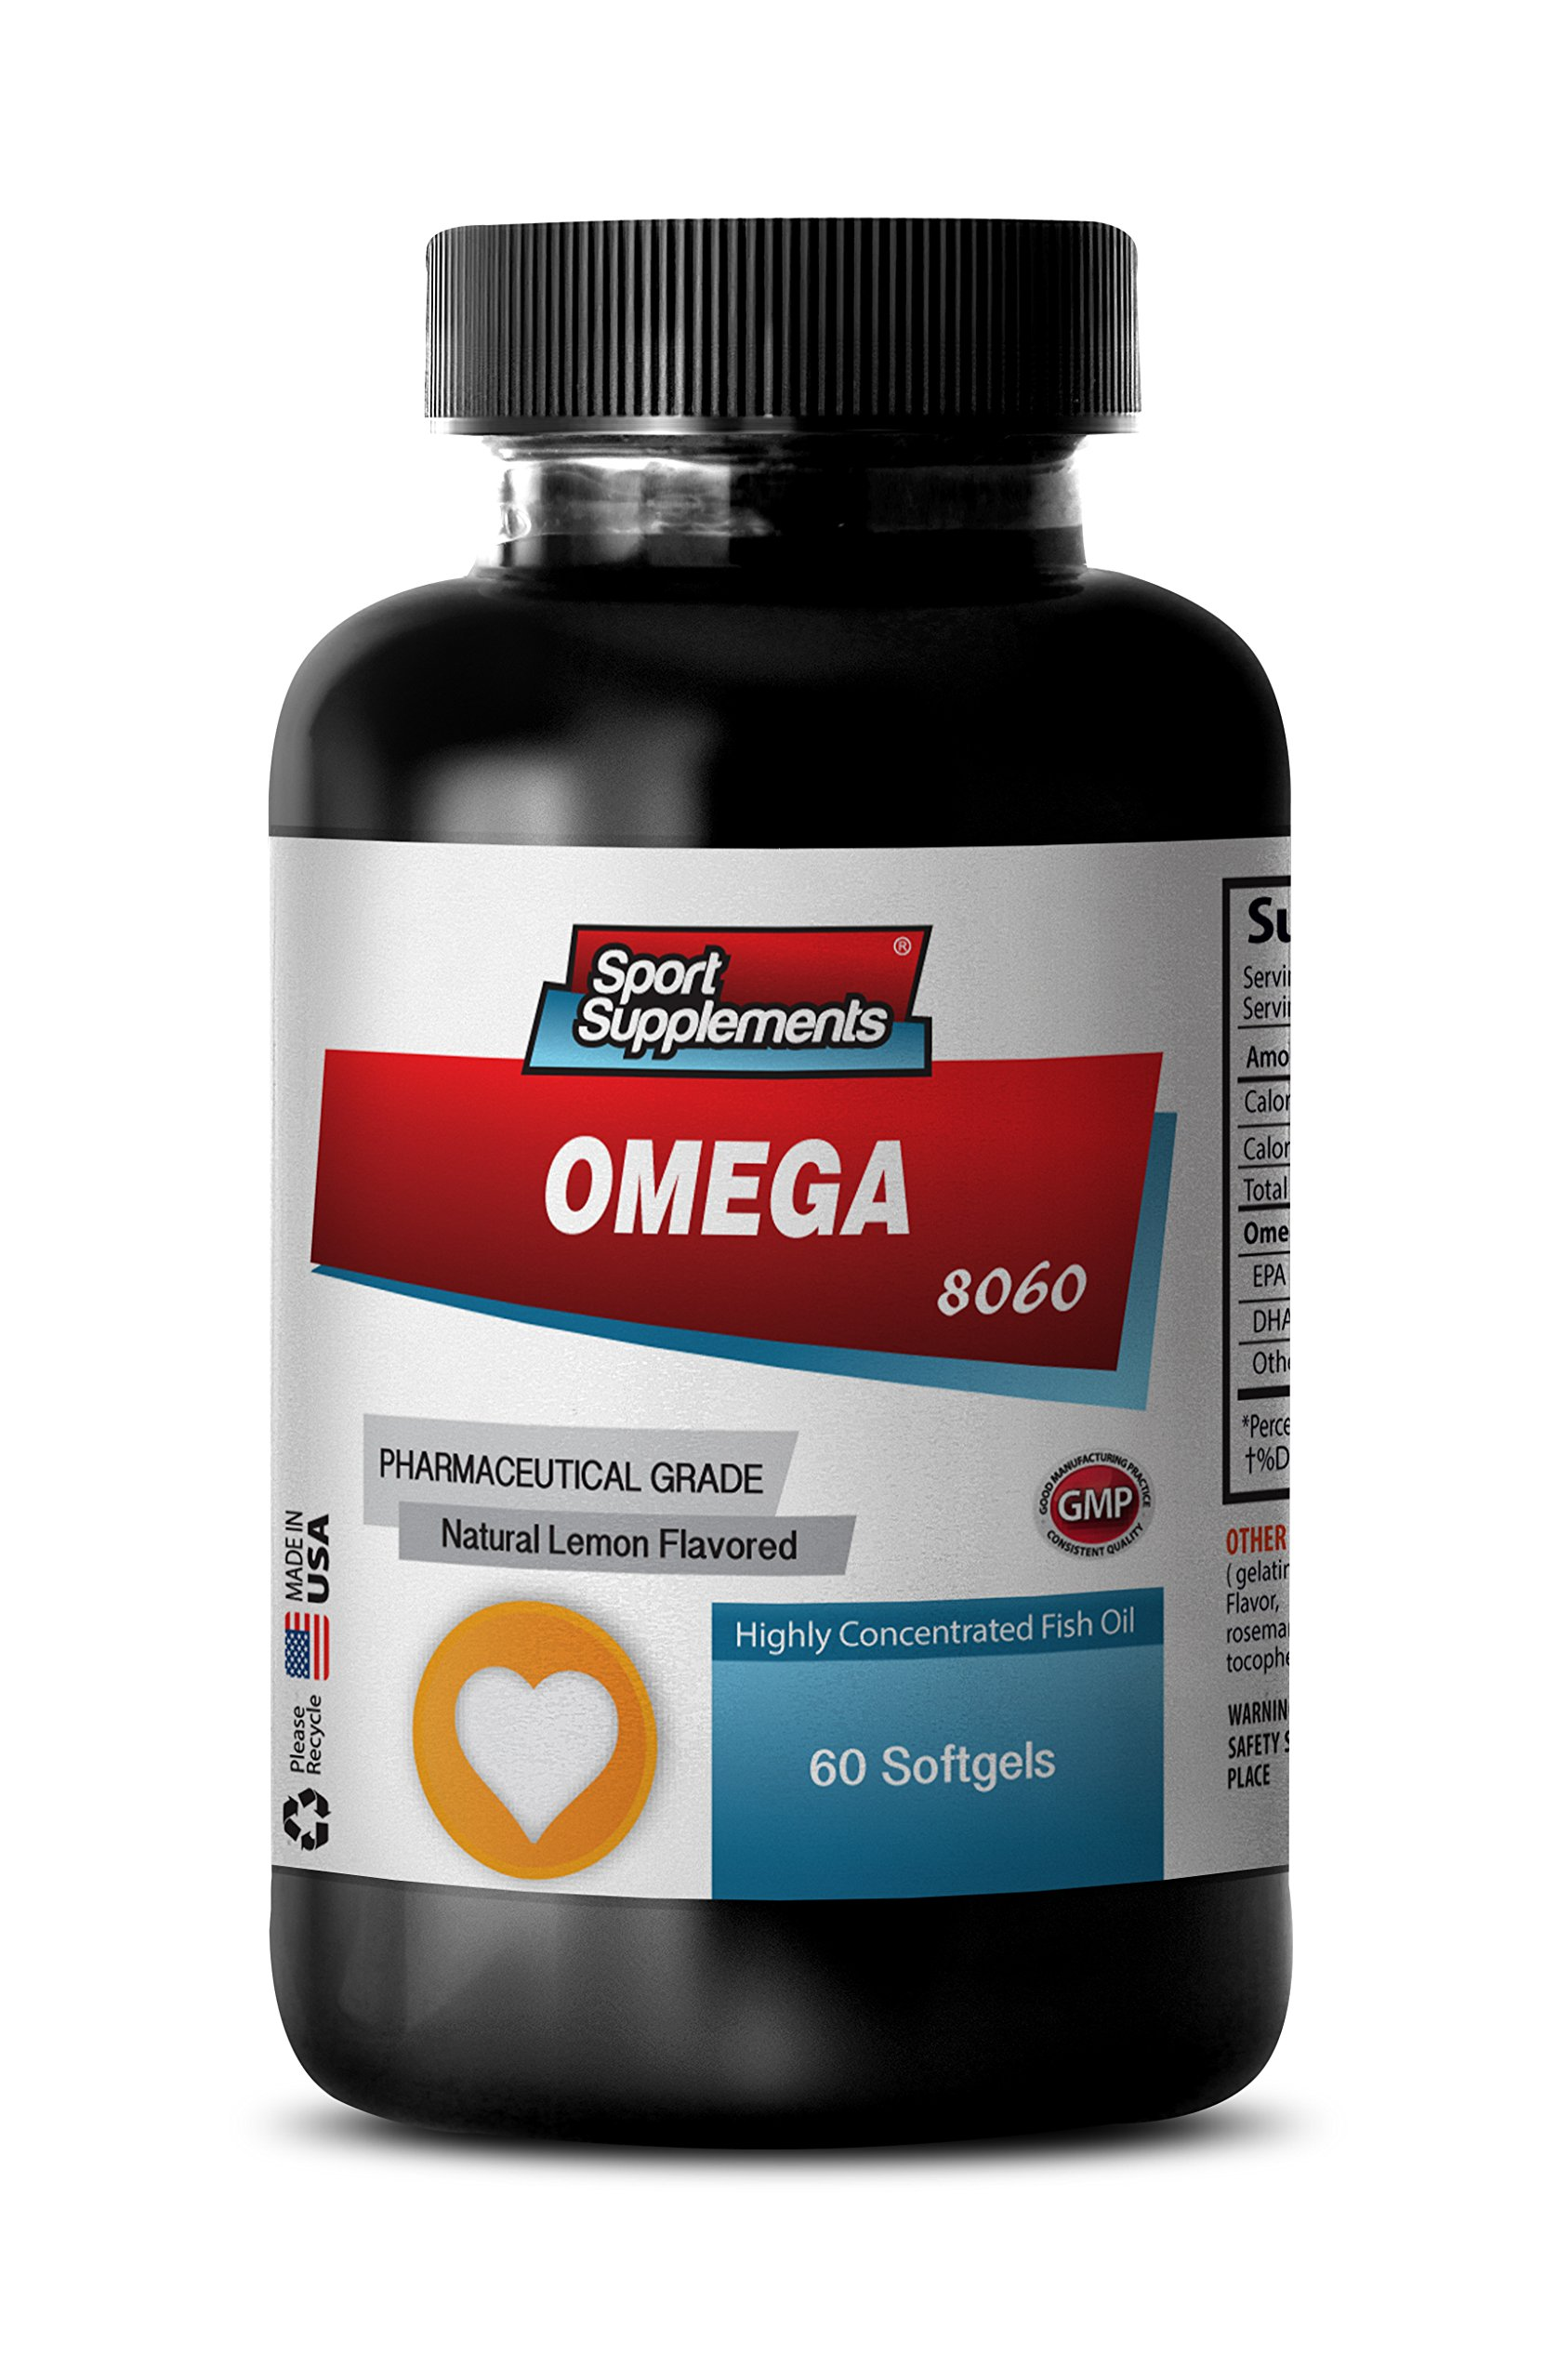 Immune support wellness - OMEGA 8060 FATTY ACIDS 1500mg (Highly Concentrated Fish Oil - Pharmaceutical Grade) - Omega 3 - 1 Bottle 60 Softgels